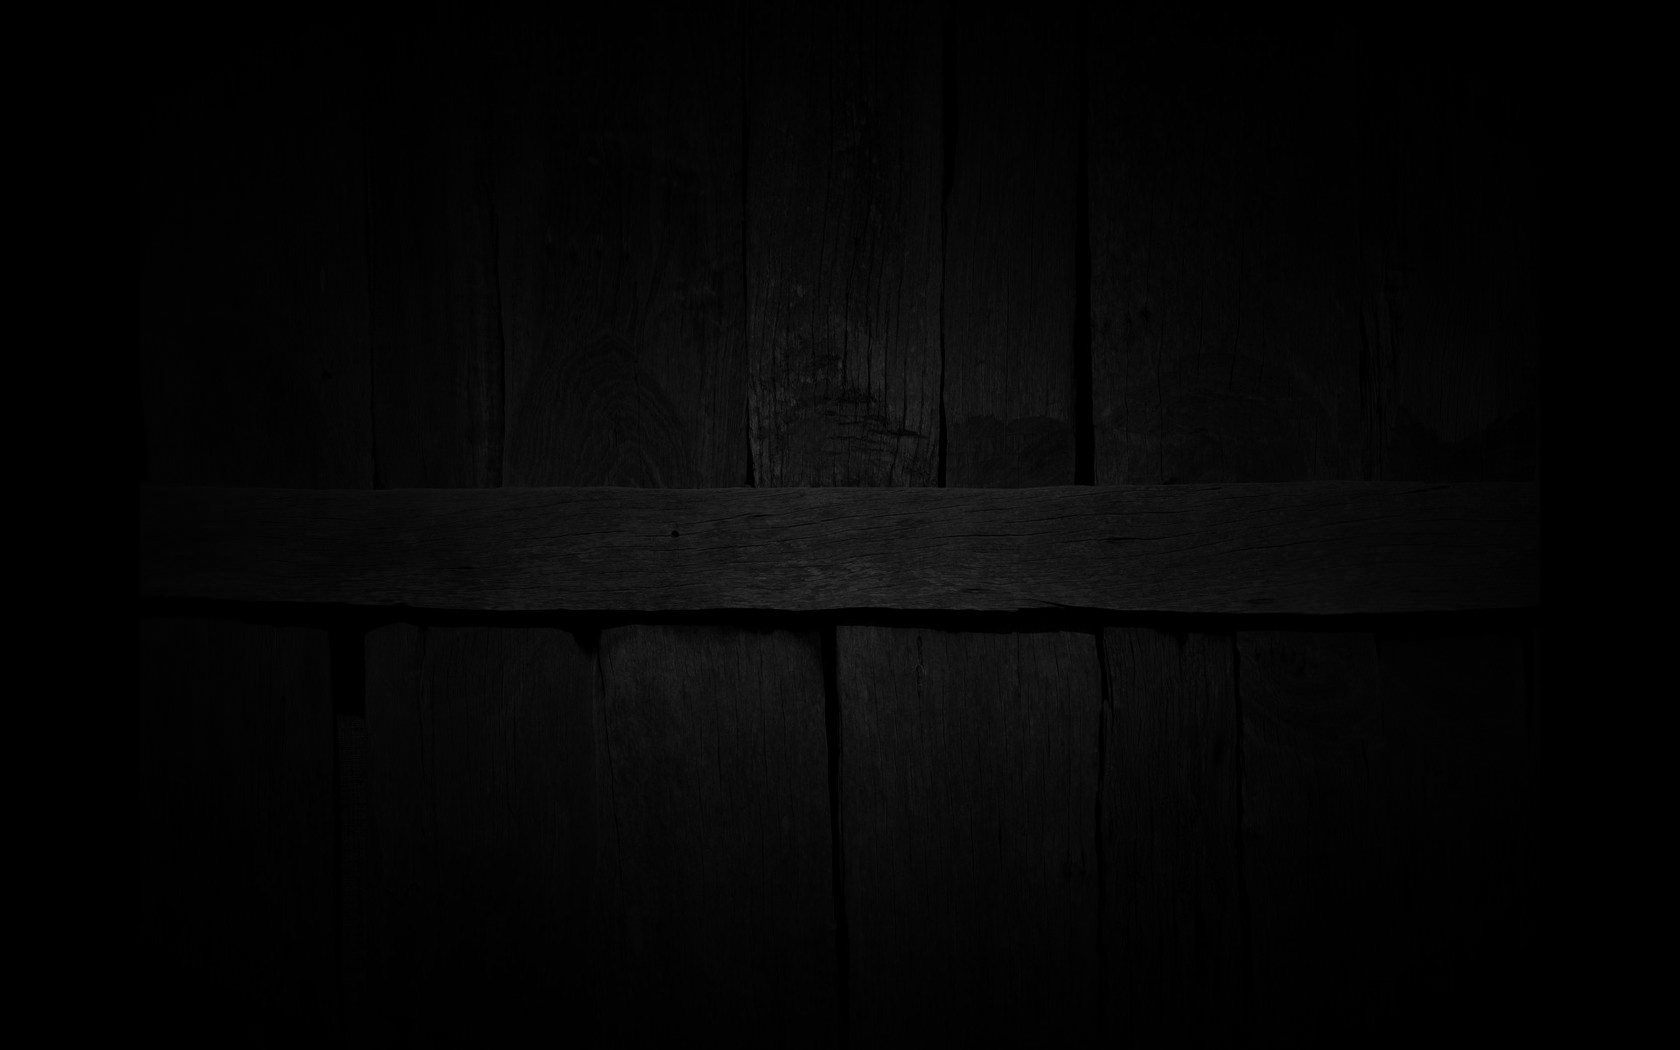 14573-dark-wood-1680x1050-abstract-wallpaper